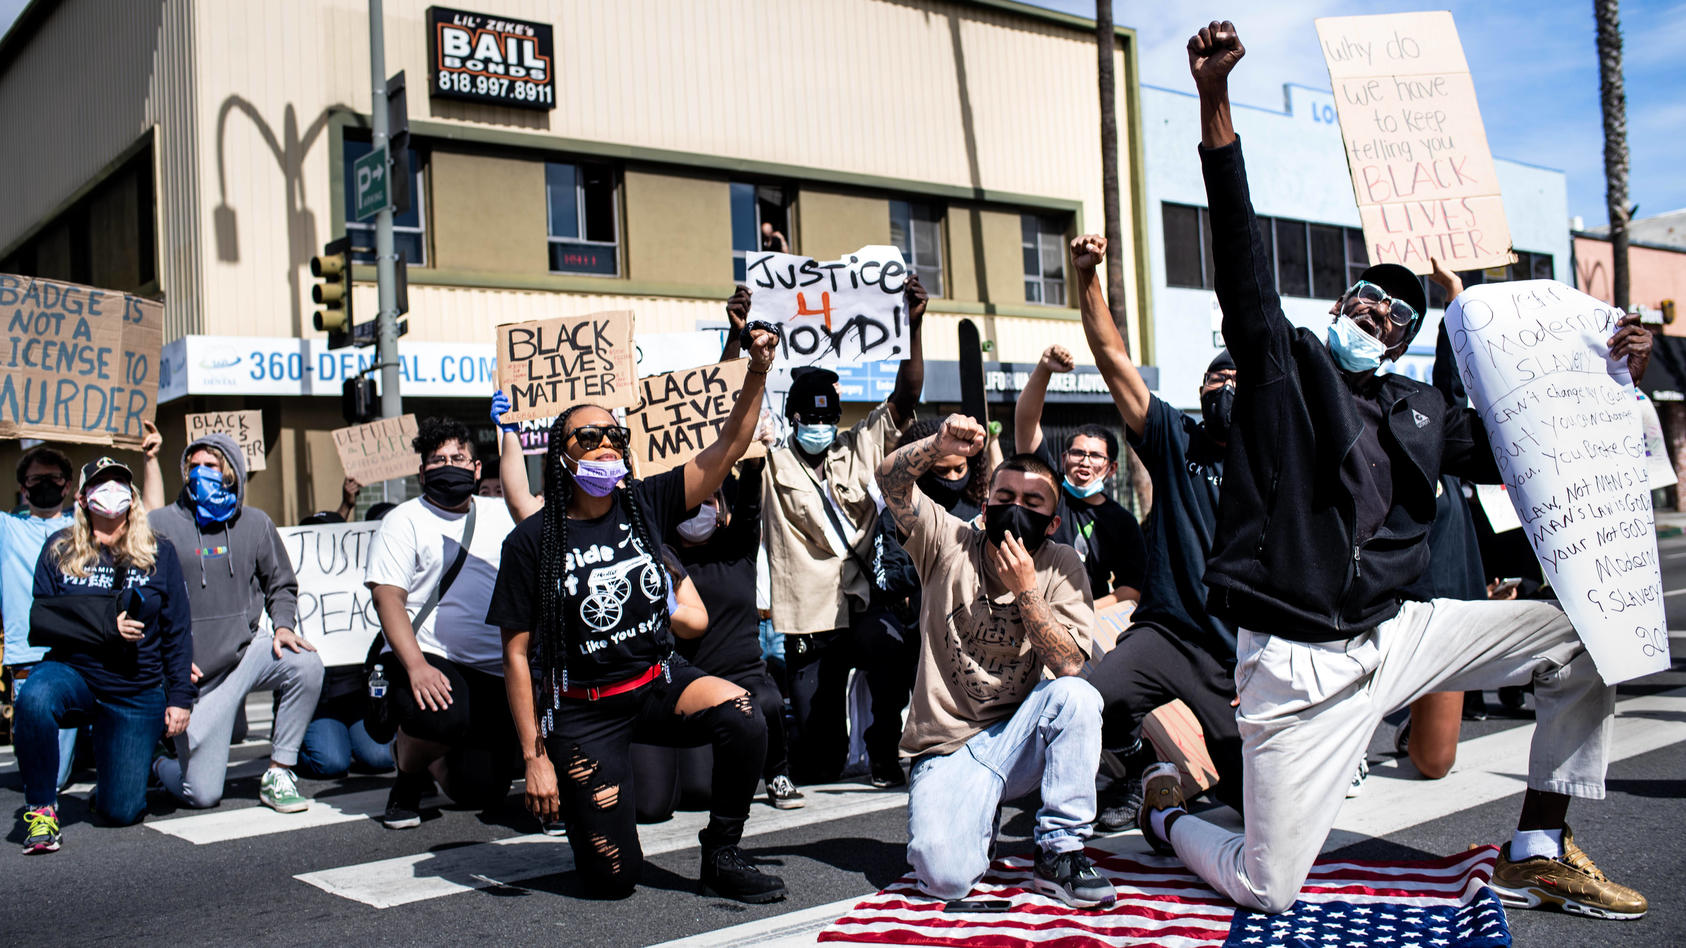 June 1, 2020, Van Nuys, California, USA: Protesters take a knee on Van Nuys Boulevard during a peaceful protest with Bl